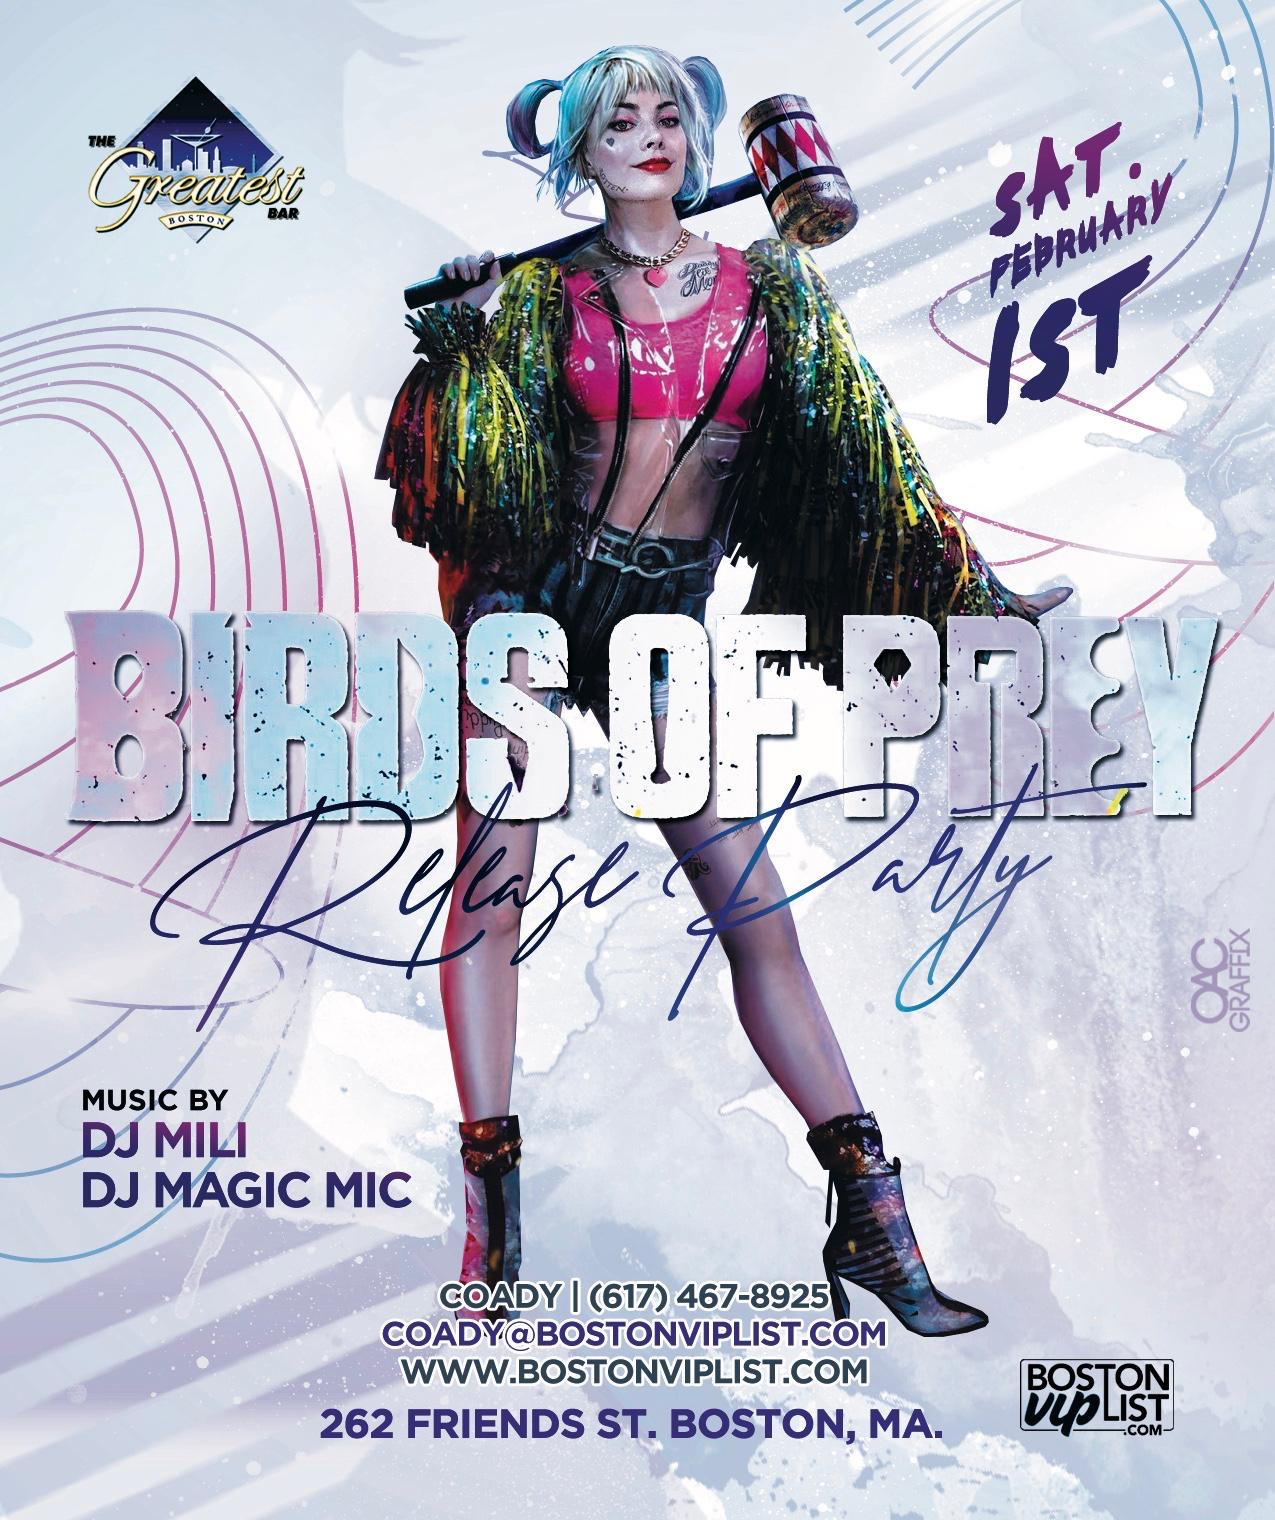 Tablelist Buy Tickets And Tables To Harley Quinn Birds Of Prey Night At The Greatest Bar